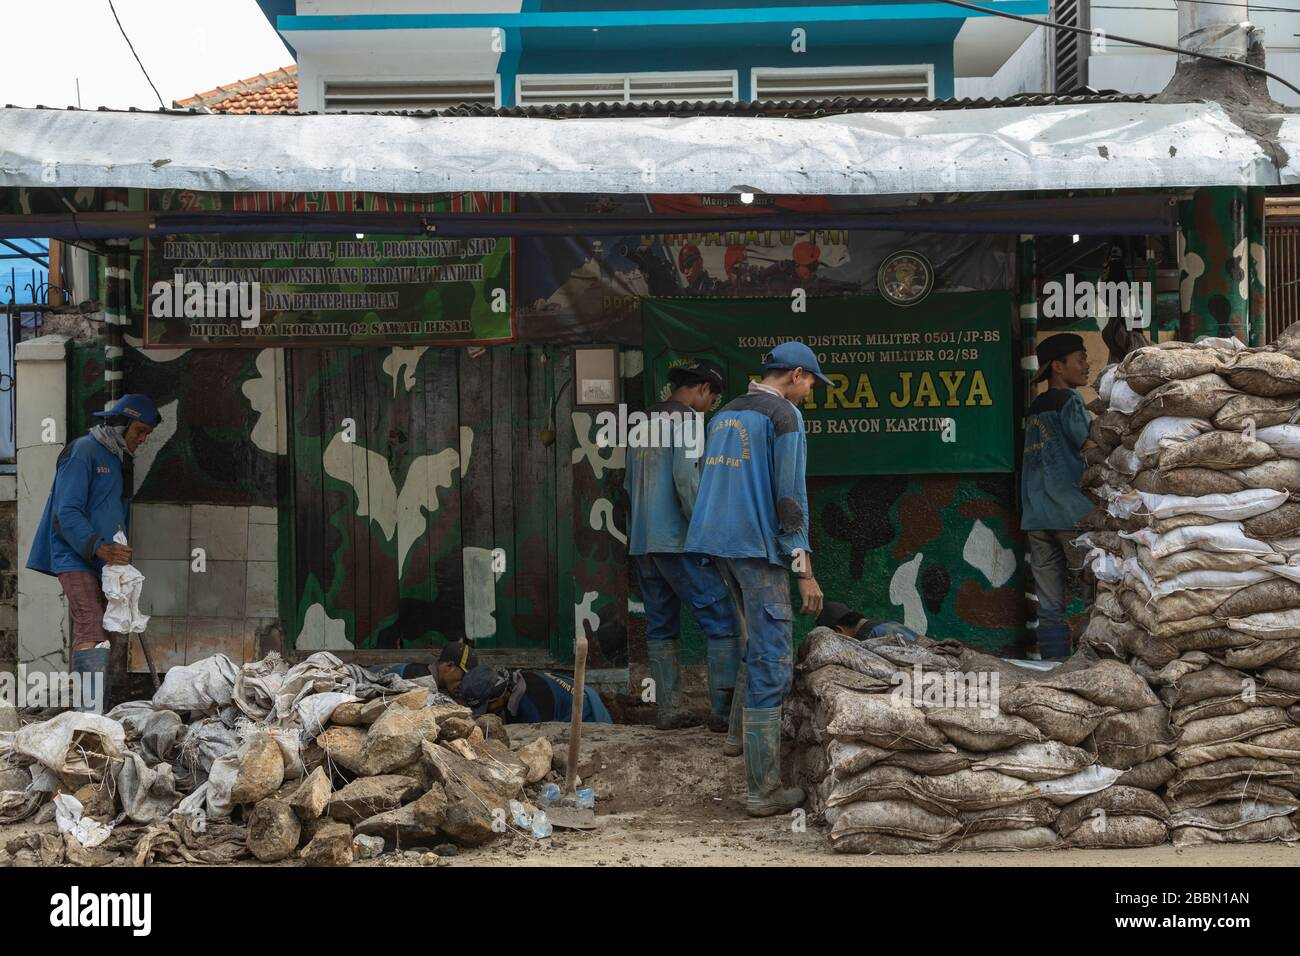 Jakarta, Indonesia - July 13, 2019: A group of maintenance workers work rudimentaryly digging ditches, filling sacks with soil and fix sewage pipes. Stock Photo